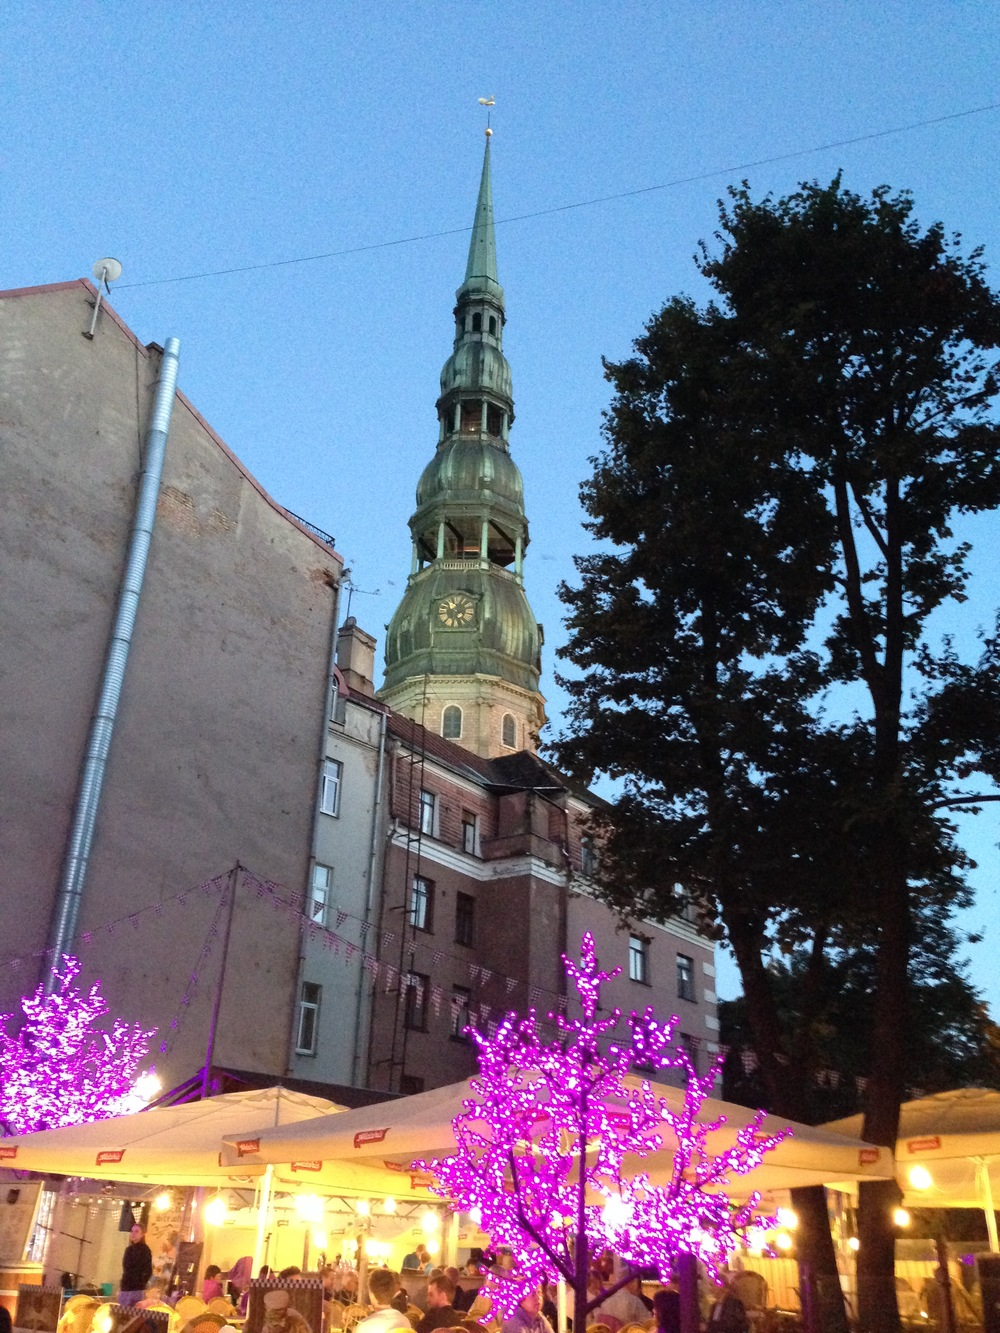 St Peter's Church rises above the buildings in Riga's old town.